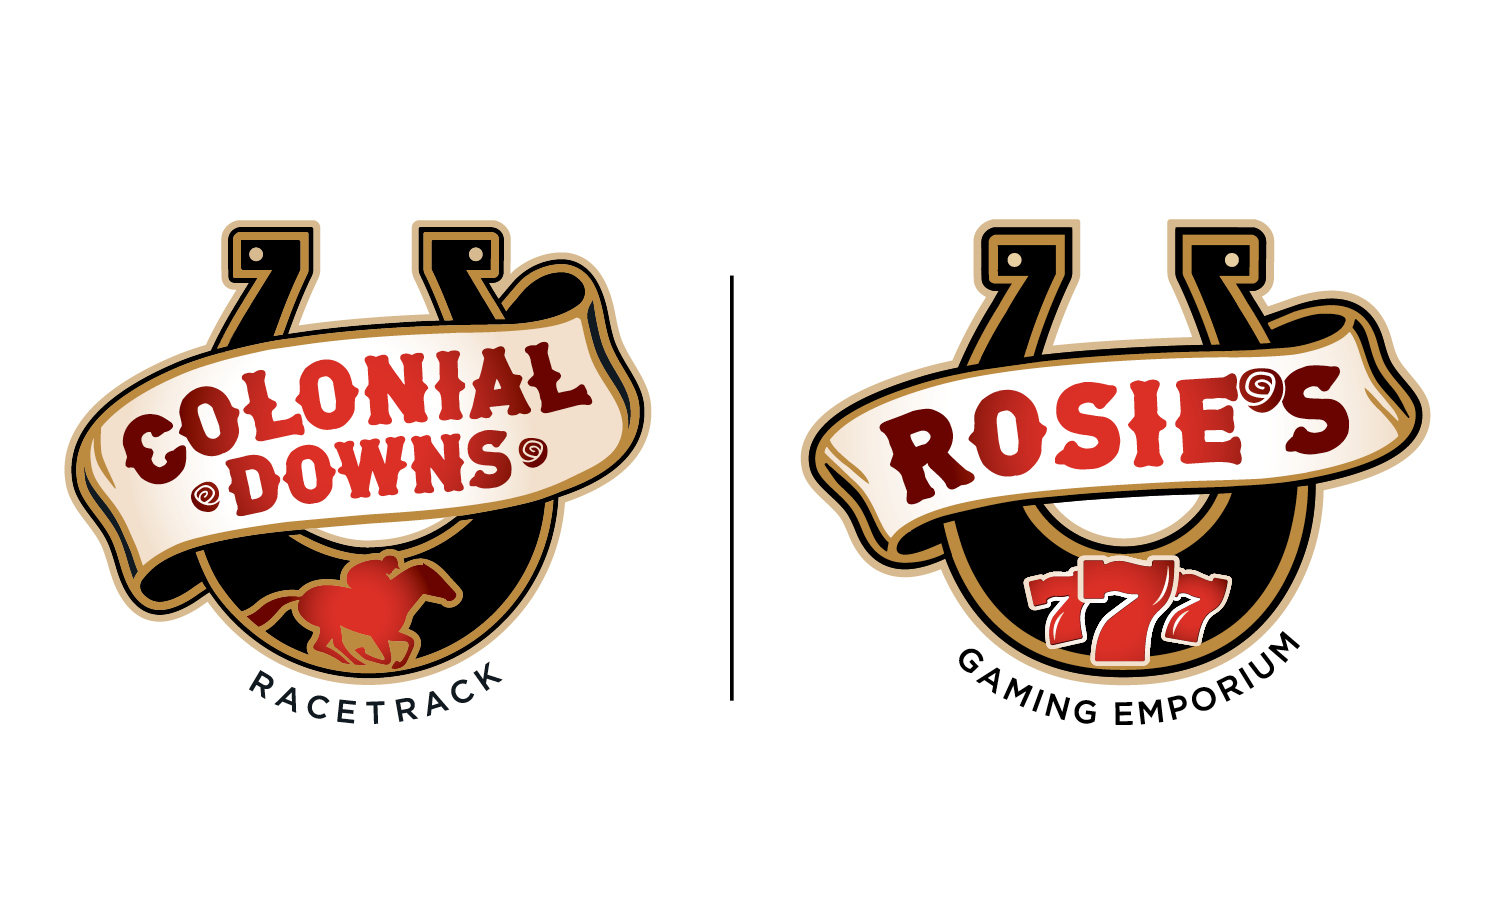 Colonial Downs Racetrack & Rosie's Gaming Emporium